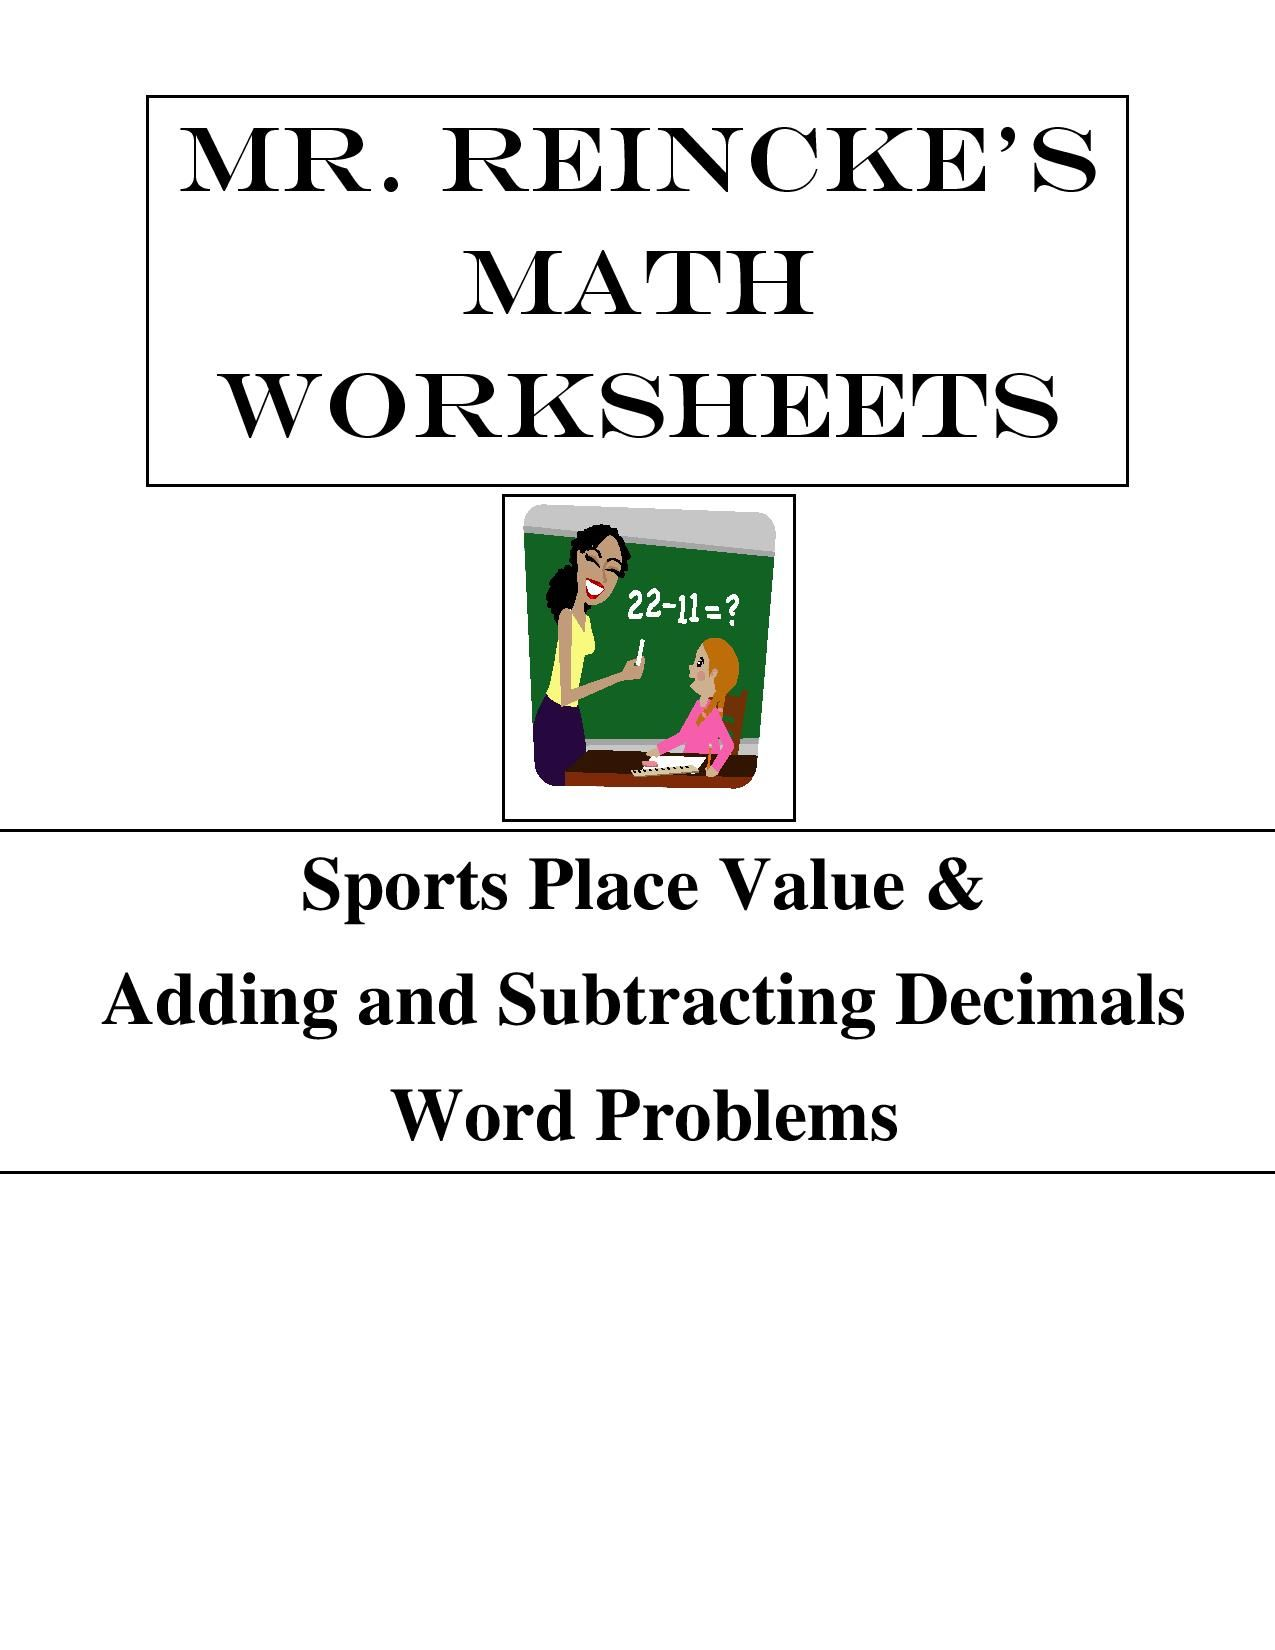 Decimals And Sports Statistics Word Problems Comparing